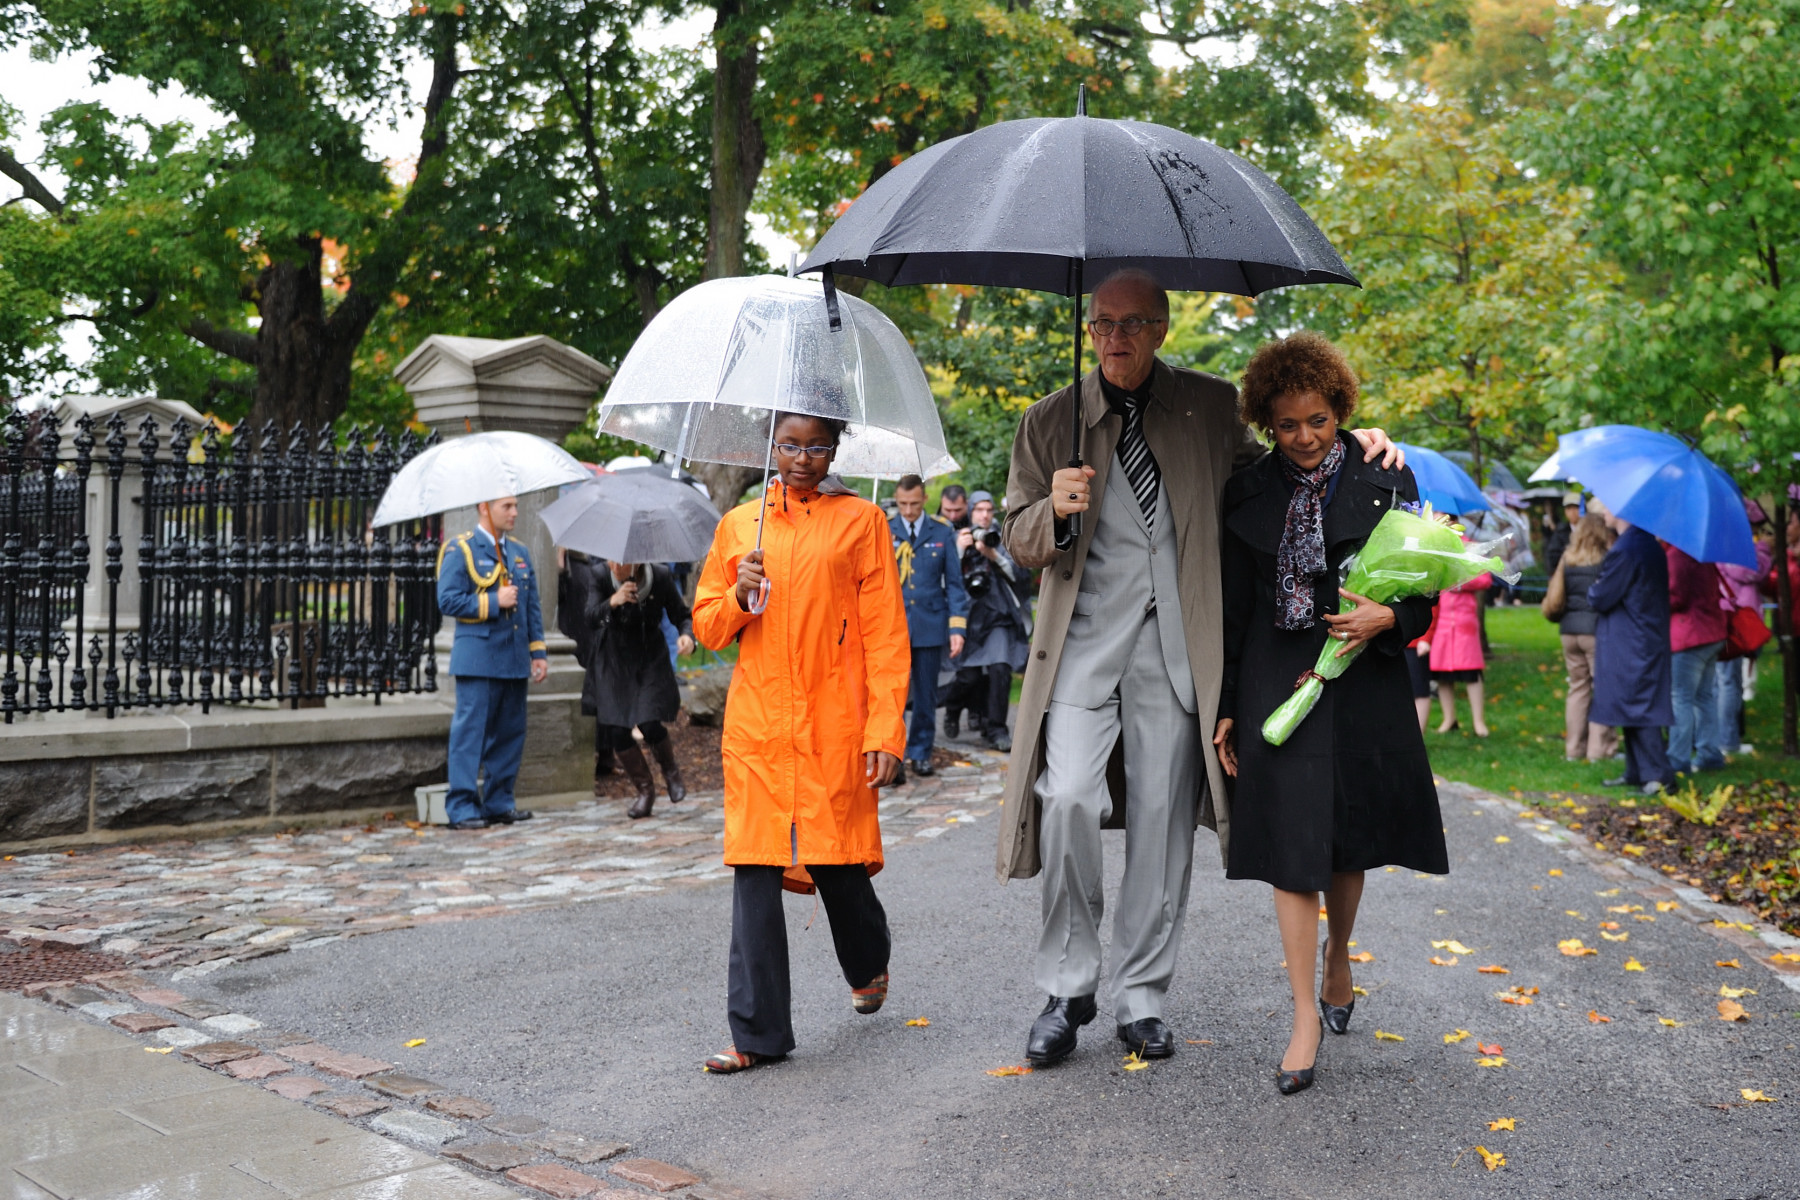 Their Excellencies and Marie-Éden leave the grounds as the mandate of the 27th Governor General of Canada officially comes to a close on October 1, 2010.